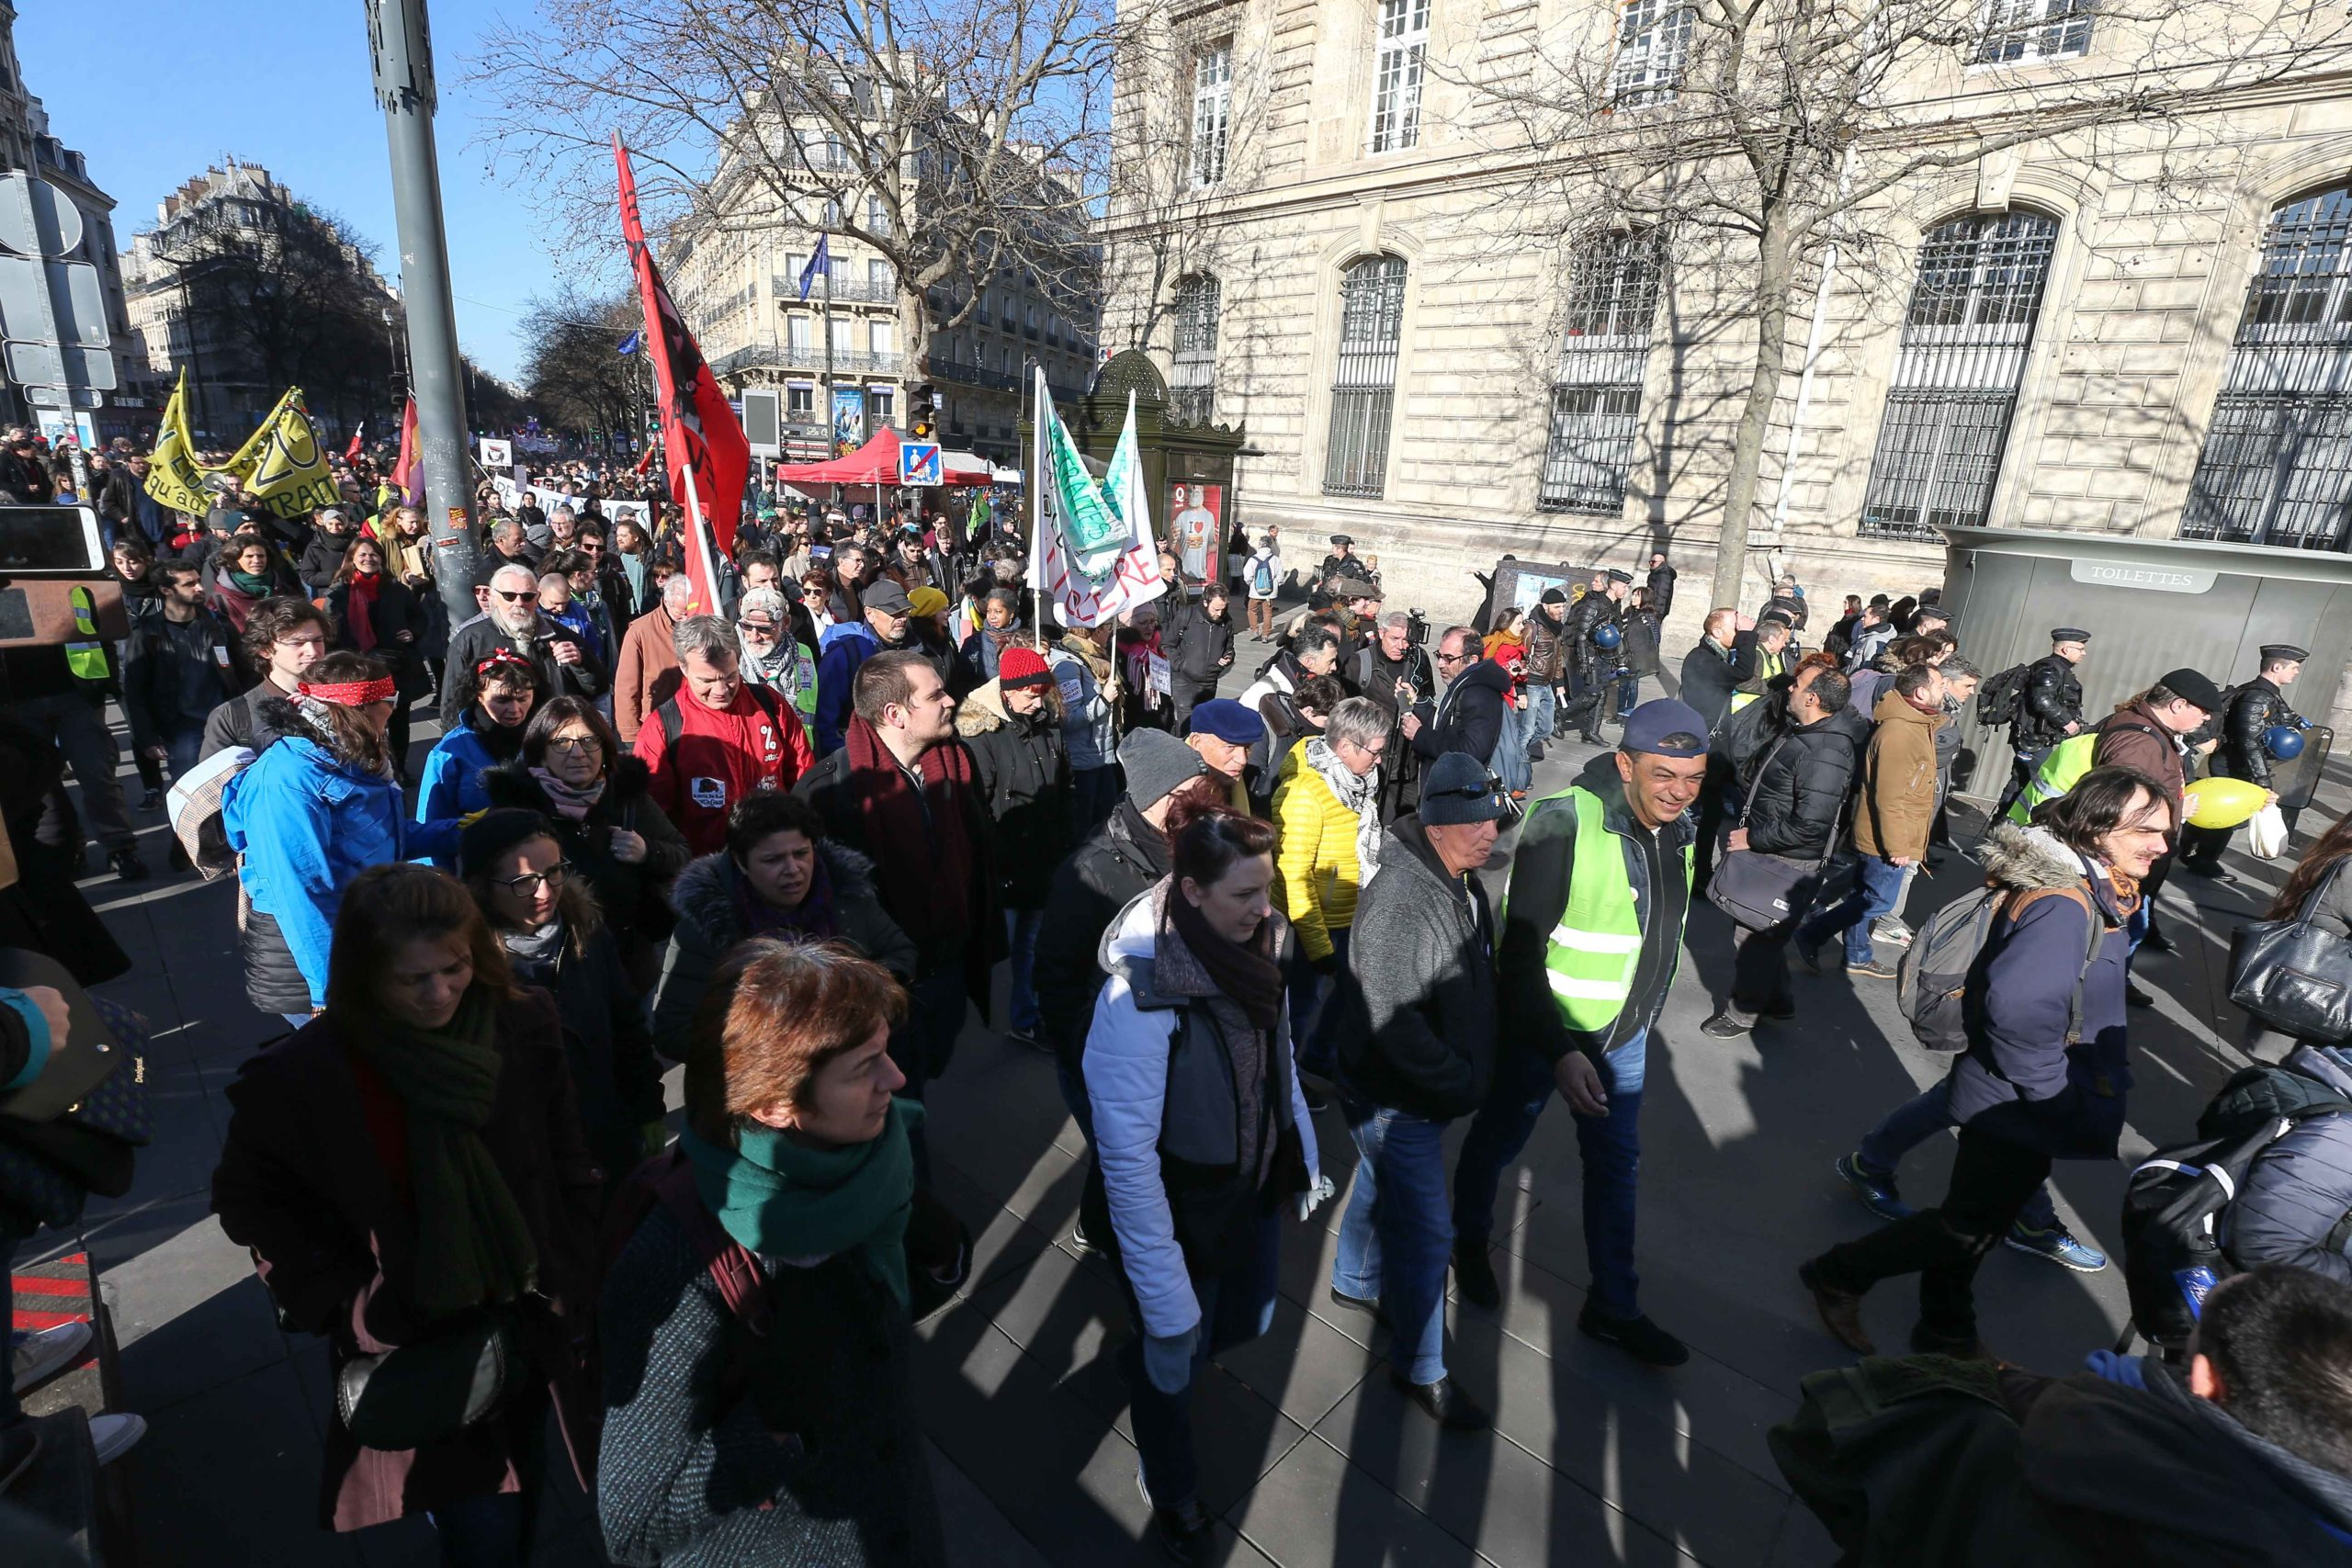 Protesters are taking to the streets in Paris on 6 February 6, 2020, during a demonstration against the French government's plan to overhaul the country's retirement system in Paris, on February 6, 2020. Protesters took to the streets in a ninth inter-prof